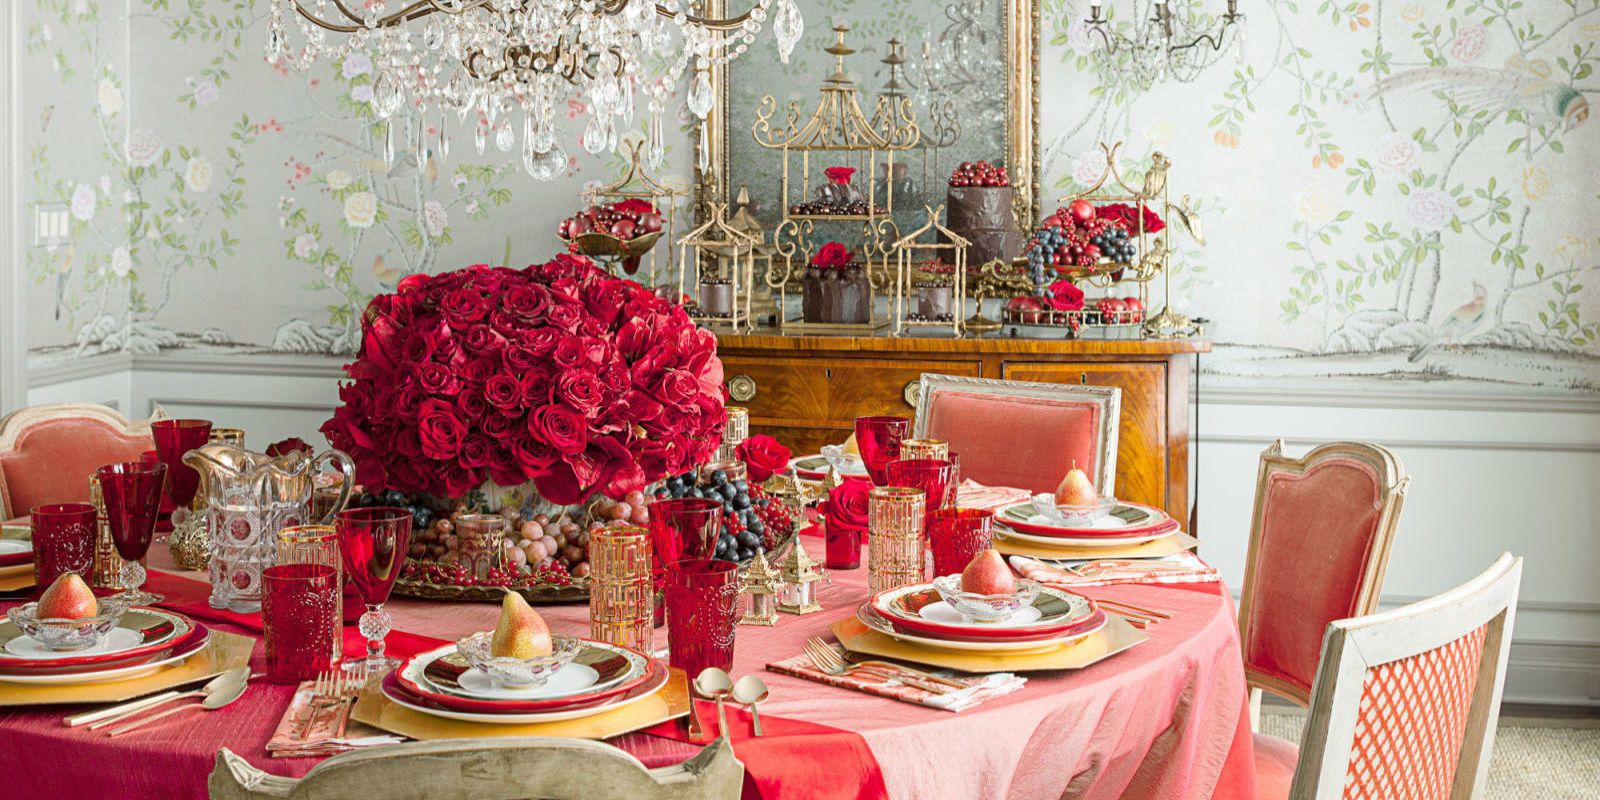 Romantic Table ... & Table Decorating Ideas - Elegant Table Decor and Settings